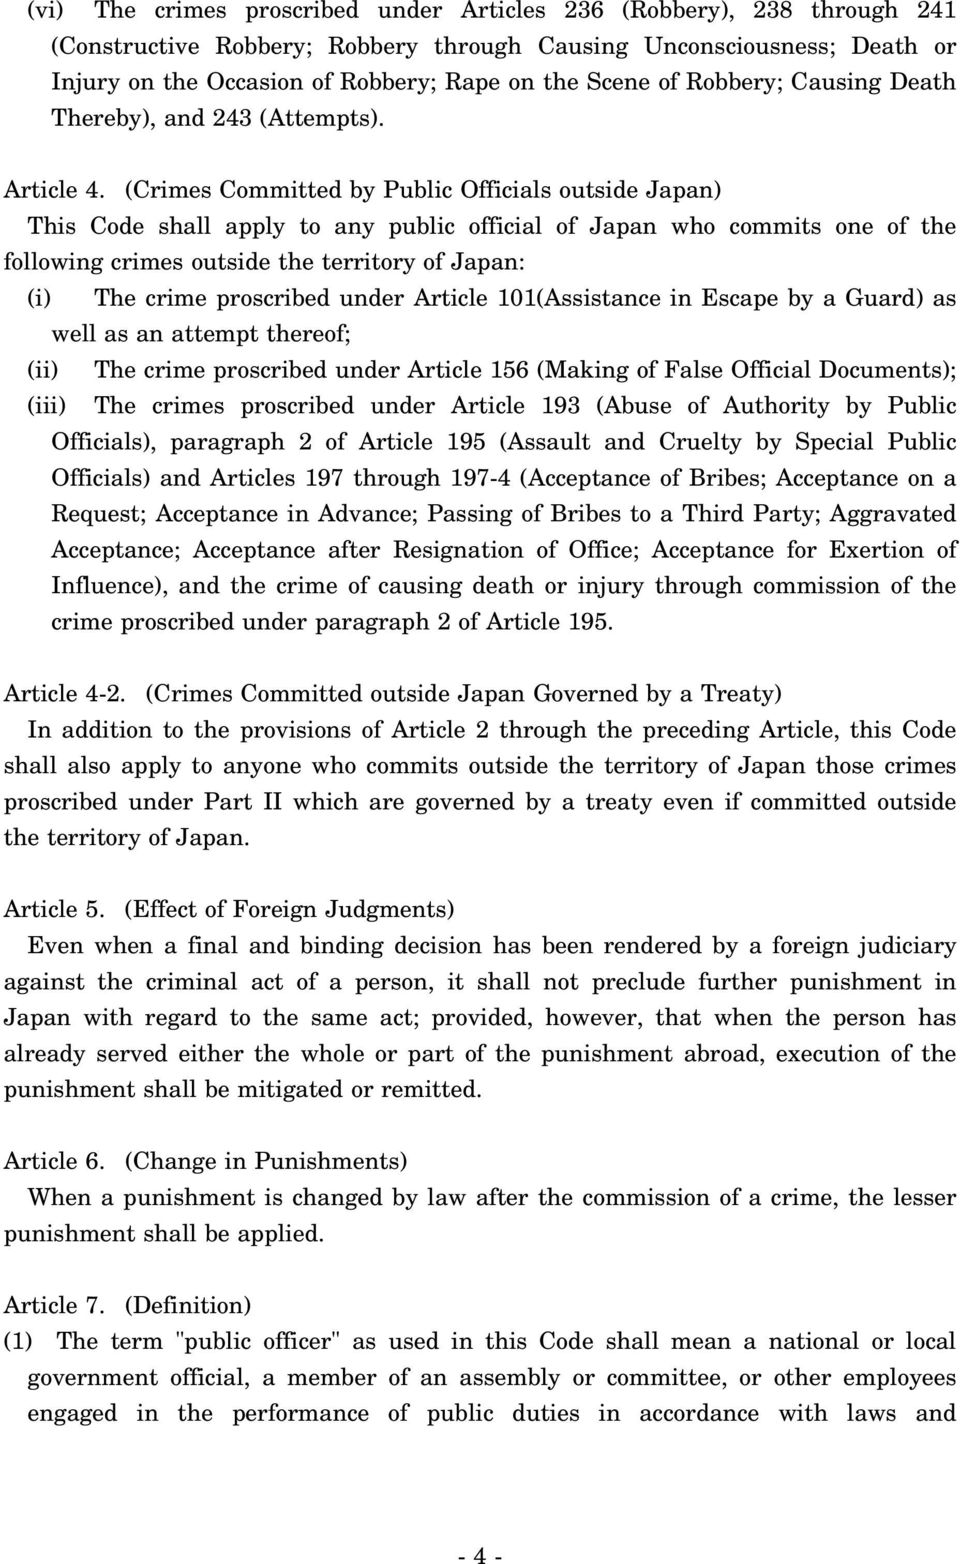 (Crimes Committed by Public Officials outside Japan) This Code shall apply to any public official of Japan who commits one of the following crimes outside the territory of Japan: (i) The crime